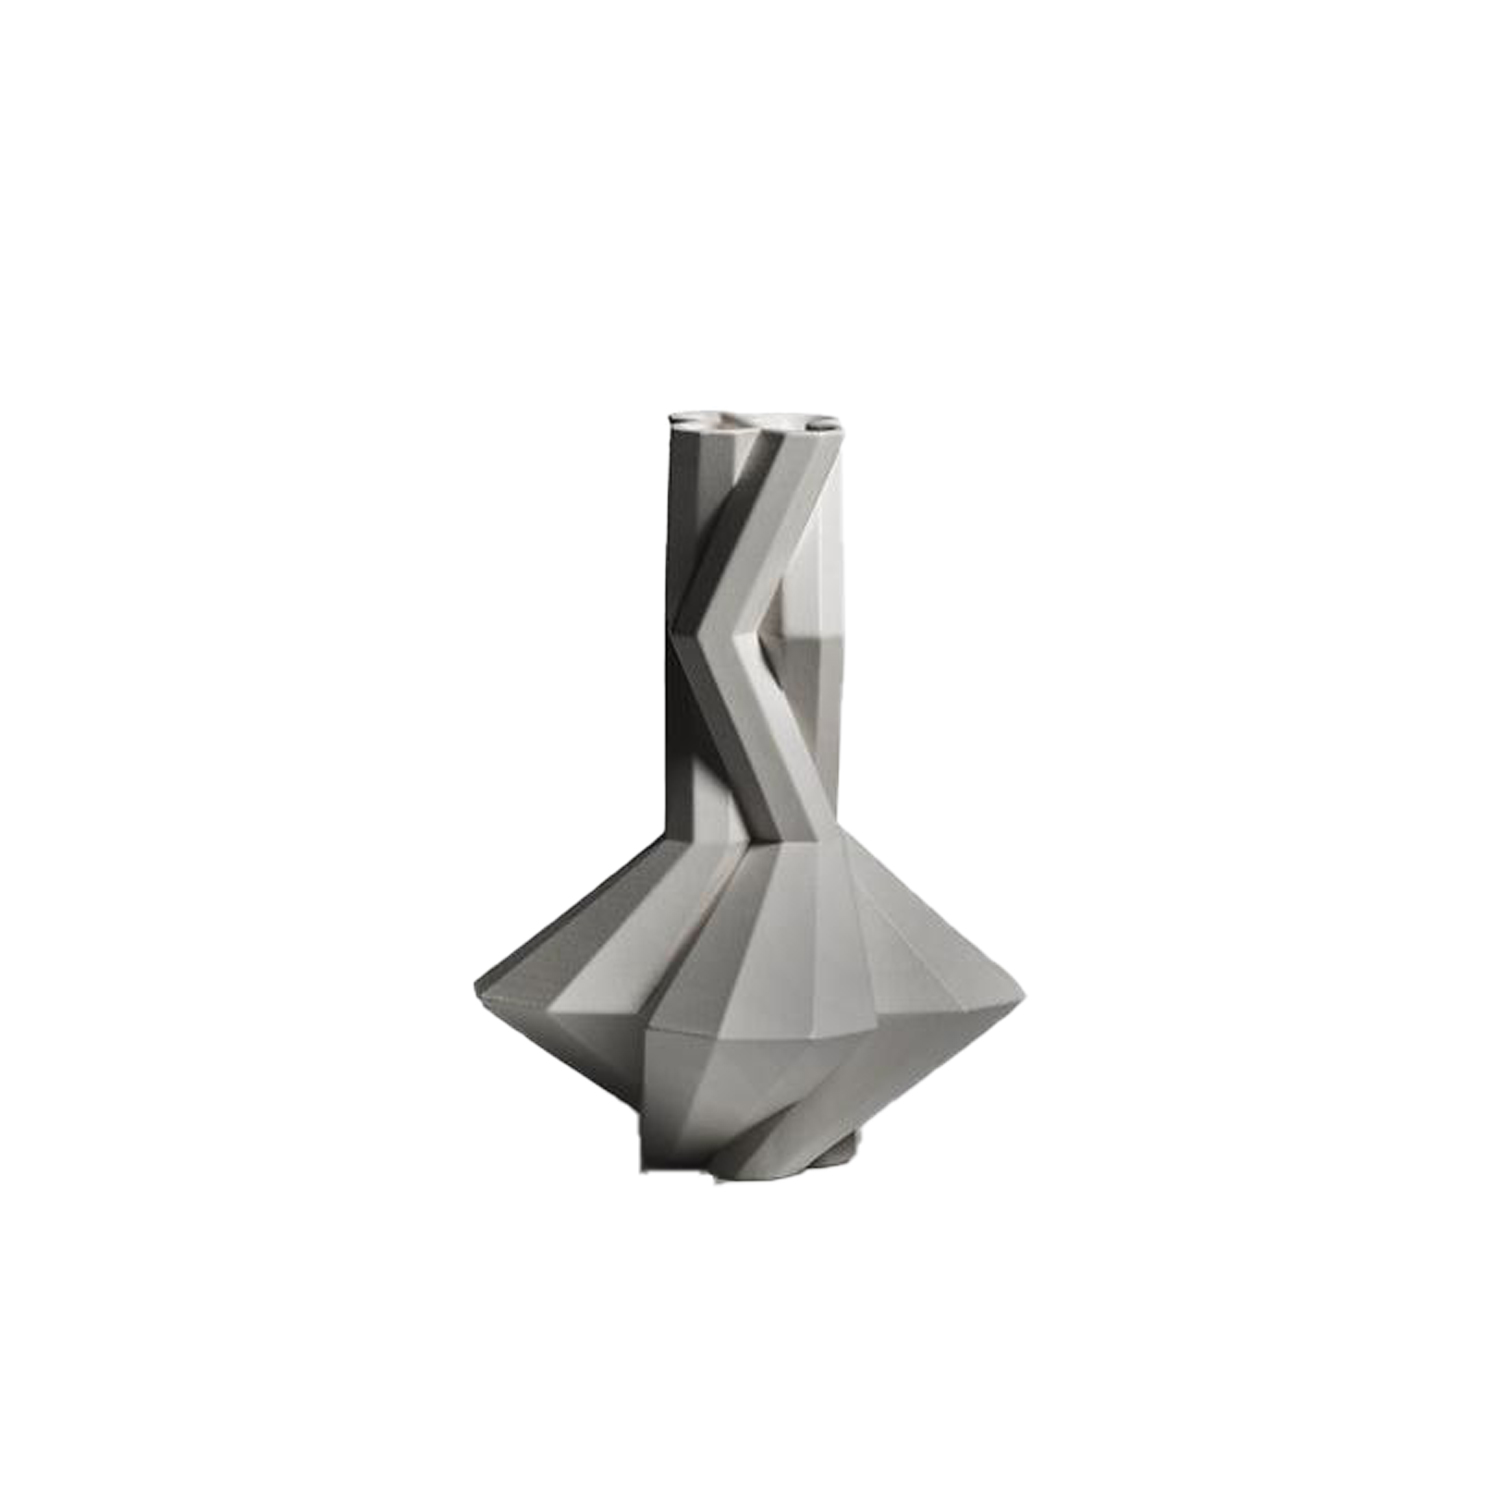 Fortress Spire Grey - Designer Lara Bohinc explores the marriage of ancient and futuristic form in the new Fortress Vase range, which has created a more complex geometric and modern structure from the original inspiration of the octagonal towers at the Diocletian Palace in Croatia. The resulting hexagonal blocks interlock and embrace to allow the play of light and shade on the many surfaces and angles. There are four Fortress shapes: the larger Column and Castle (45cm height), the Pillar (30cm height) and the Tower vase (37cm height). These are hand made from ceramic in a small Italian artisanal workshop and come in three finishes: dark gold, bronze and speckled white.  | Matter of Stuff